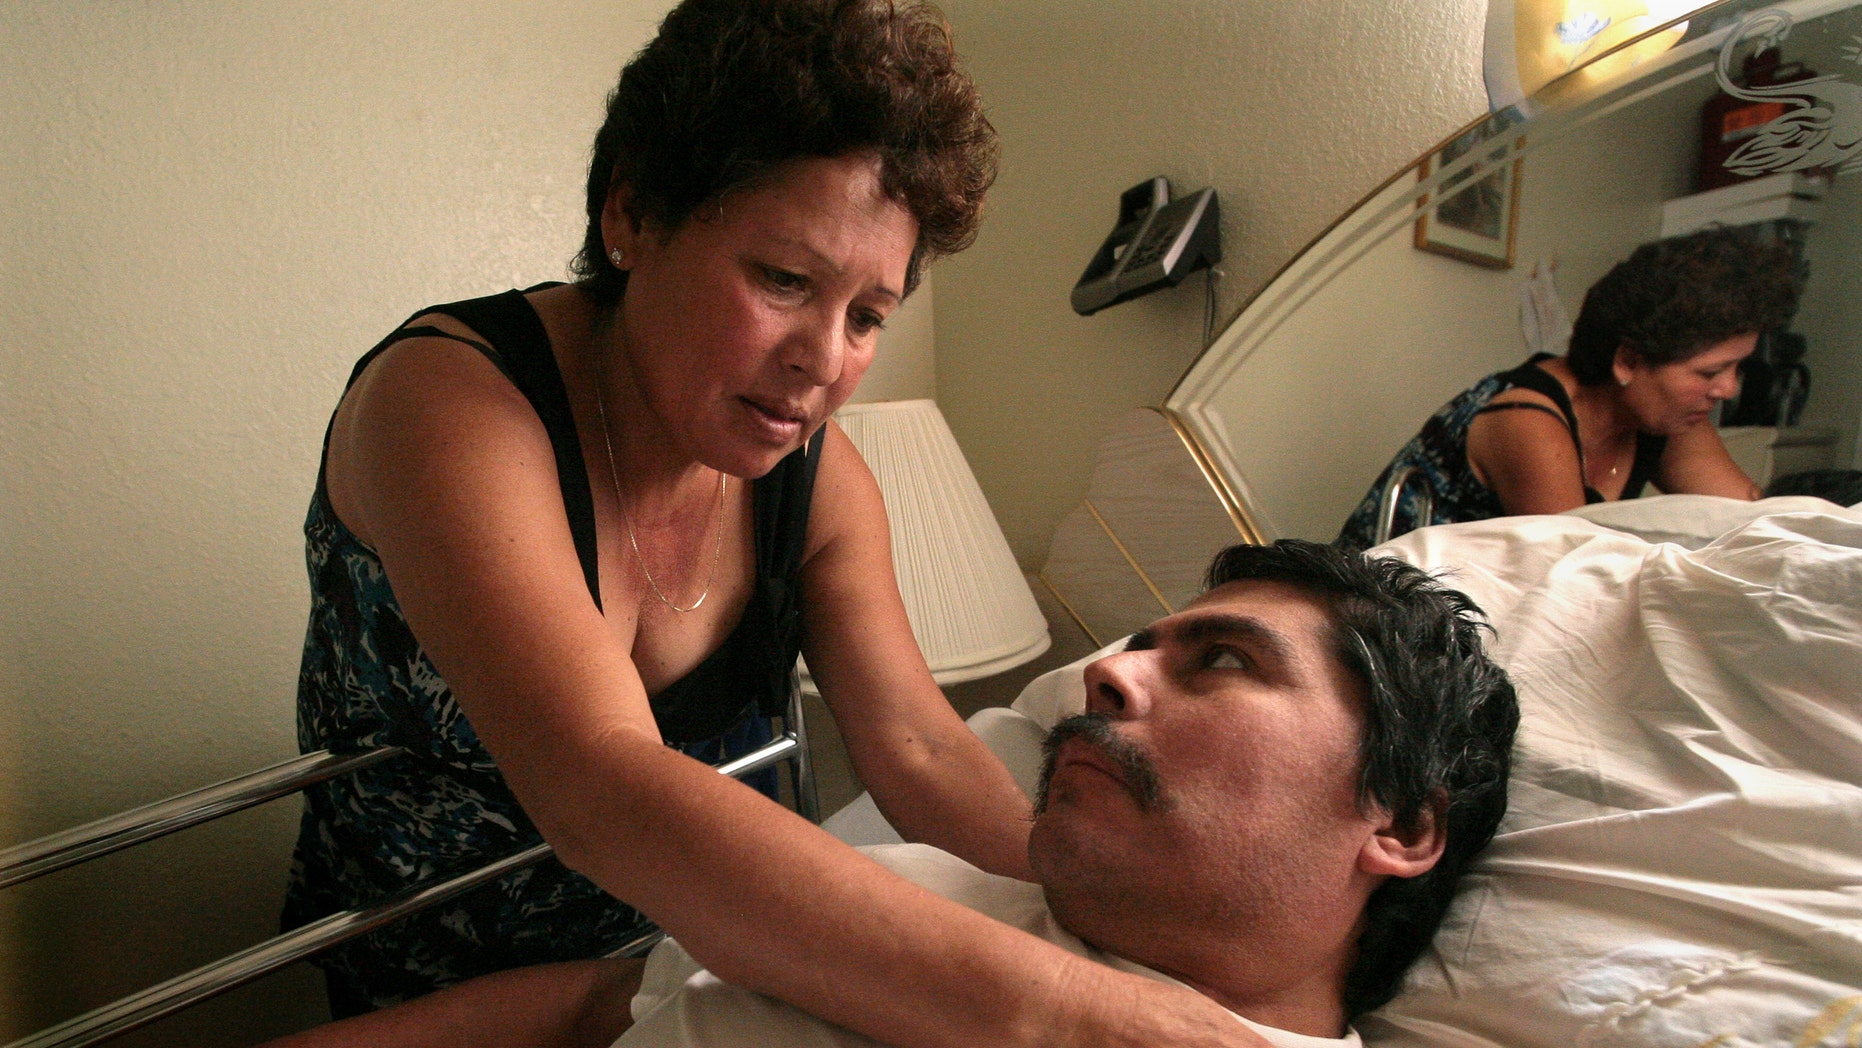 Oct. 13, 2008: Lucila Huerta, tends to her husband Guadalupe, who is suffering from Valley Fever and other medical problems, in their apartment in Madera, Calif.